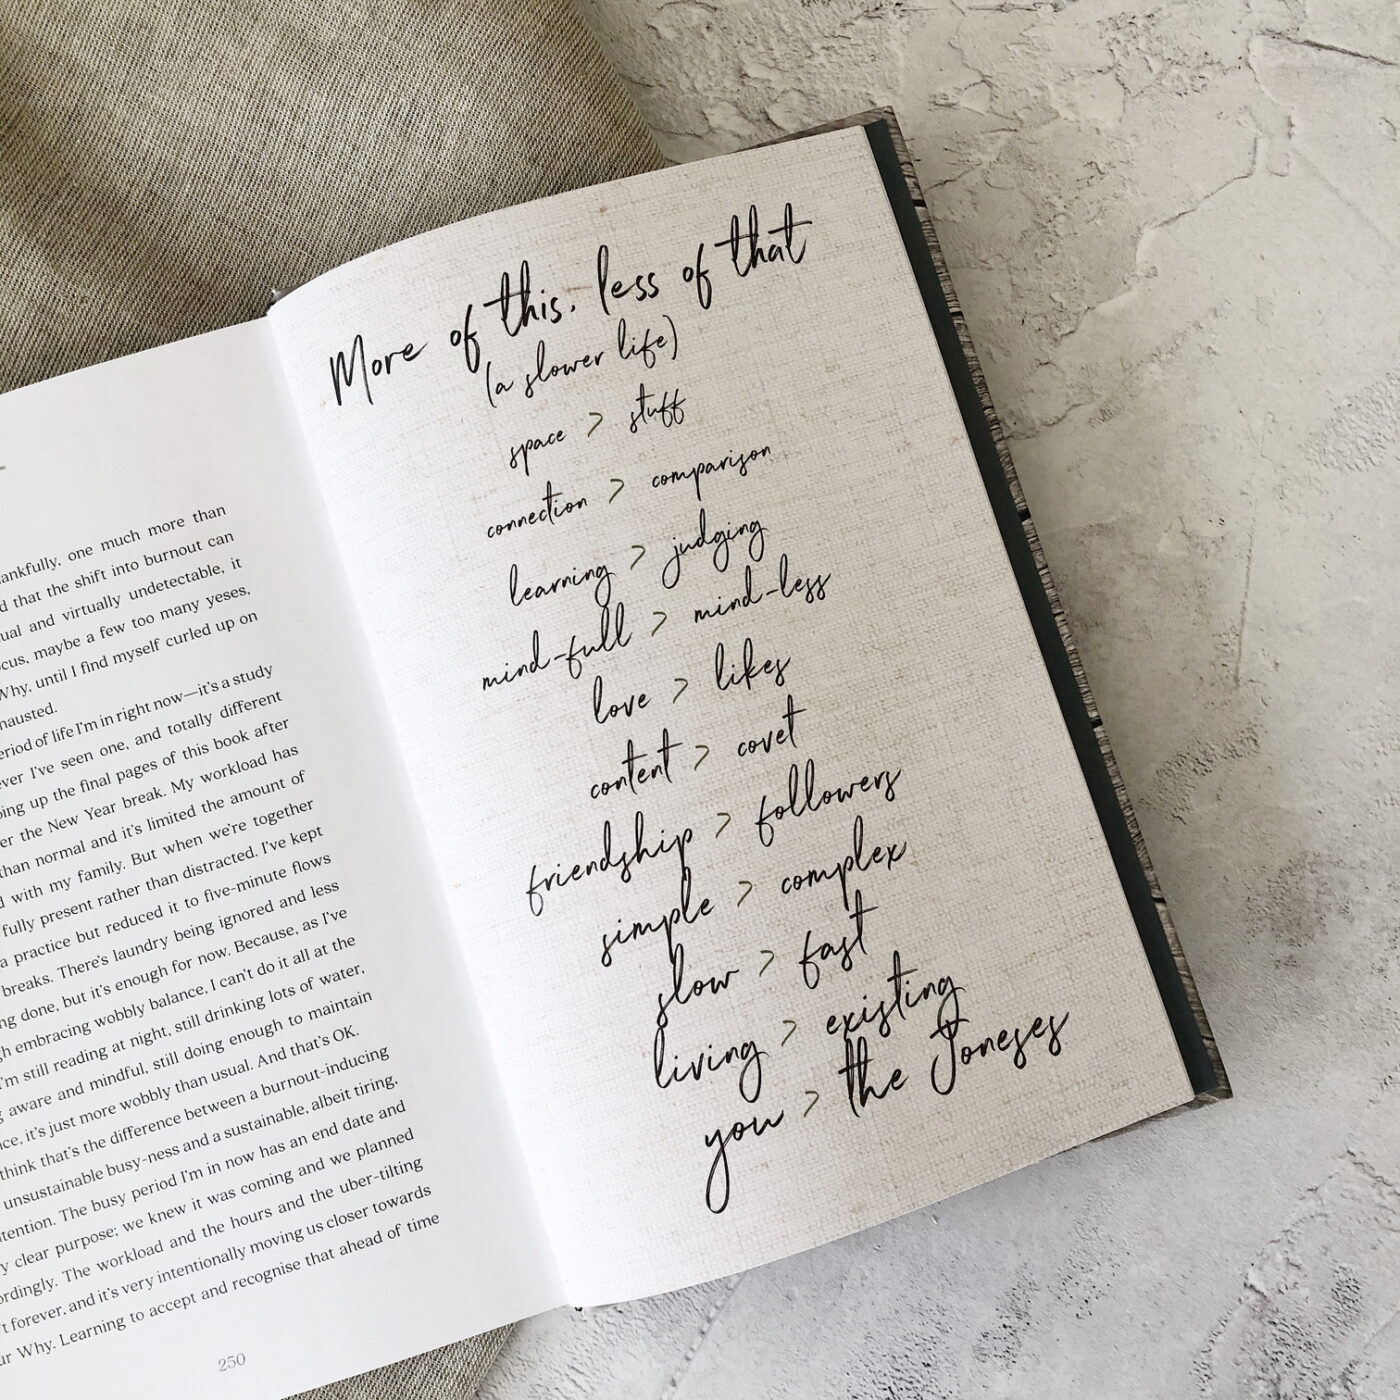 Thought-Provoking and Inspiring Slow Living Quotes